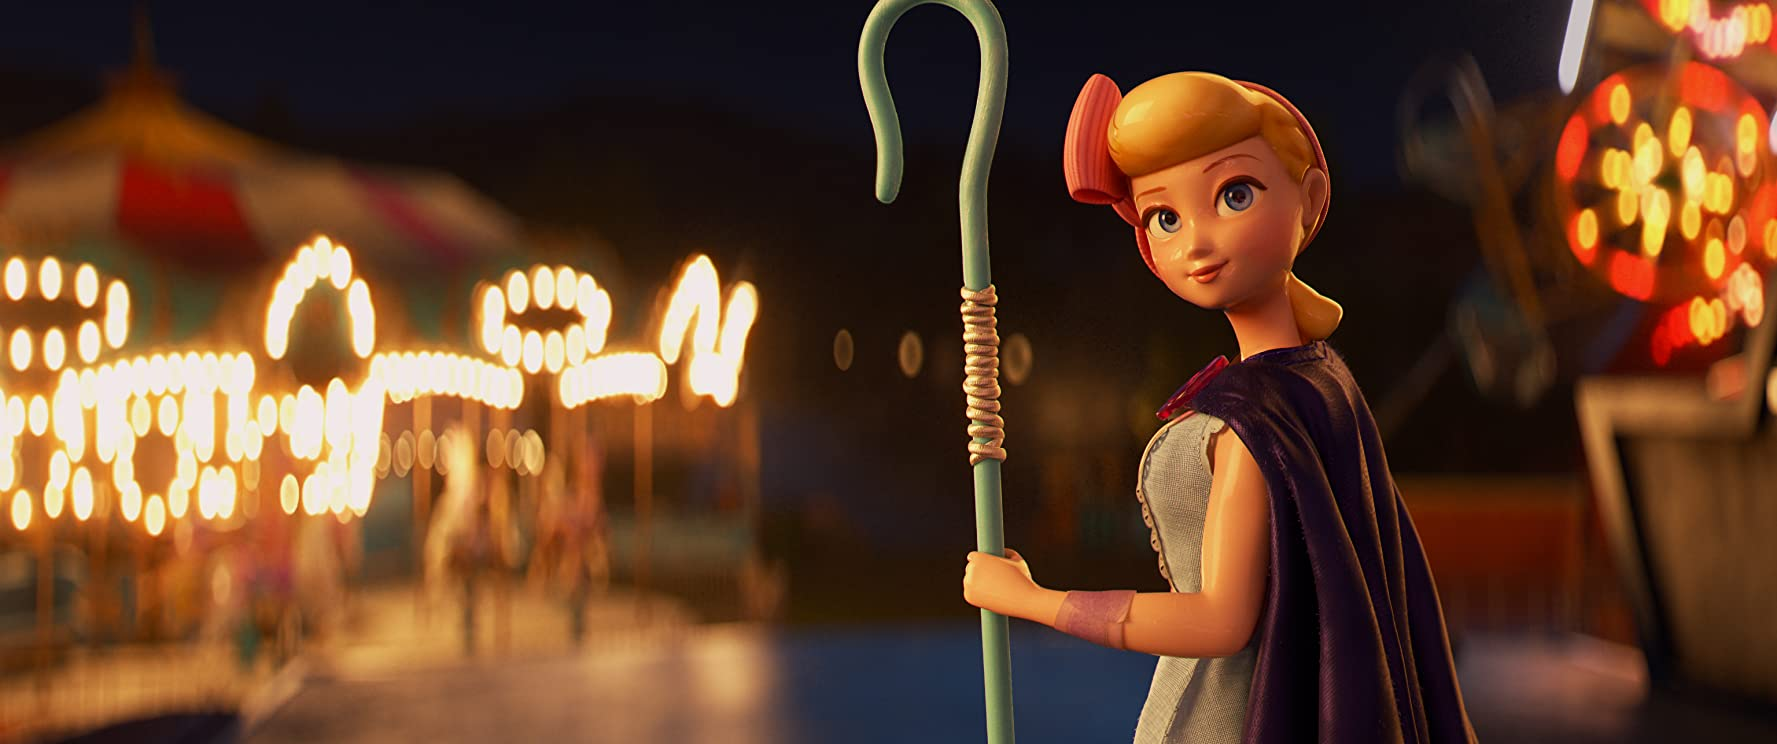 Annie Potts in Toy Story 4 (2019)